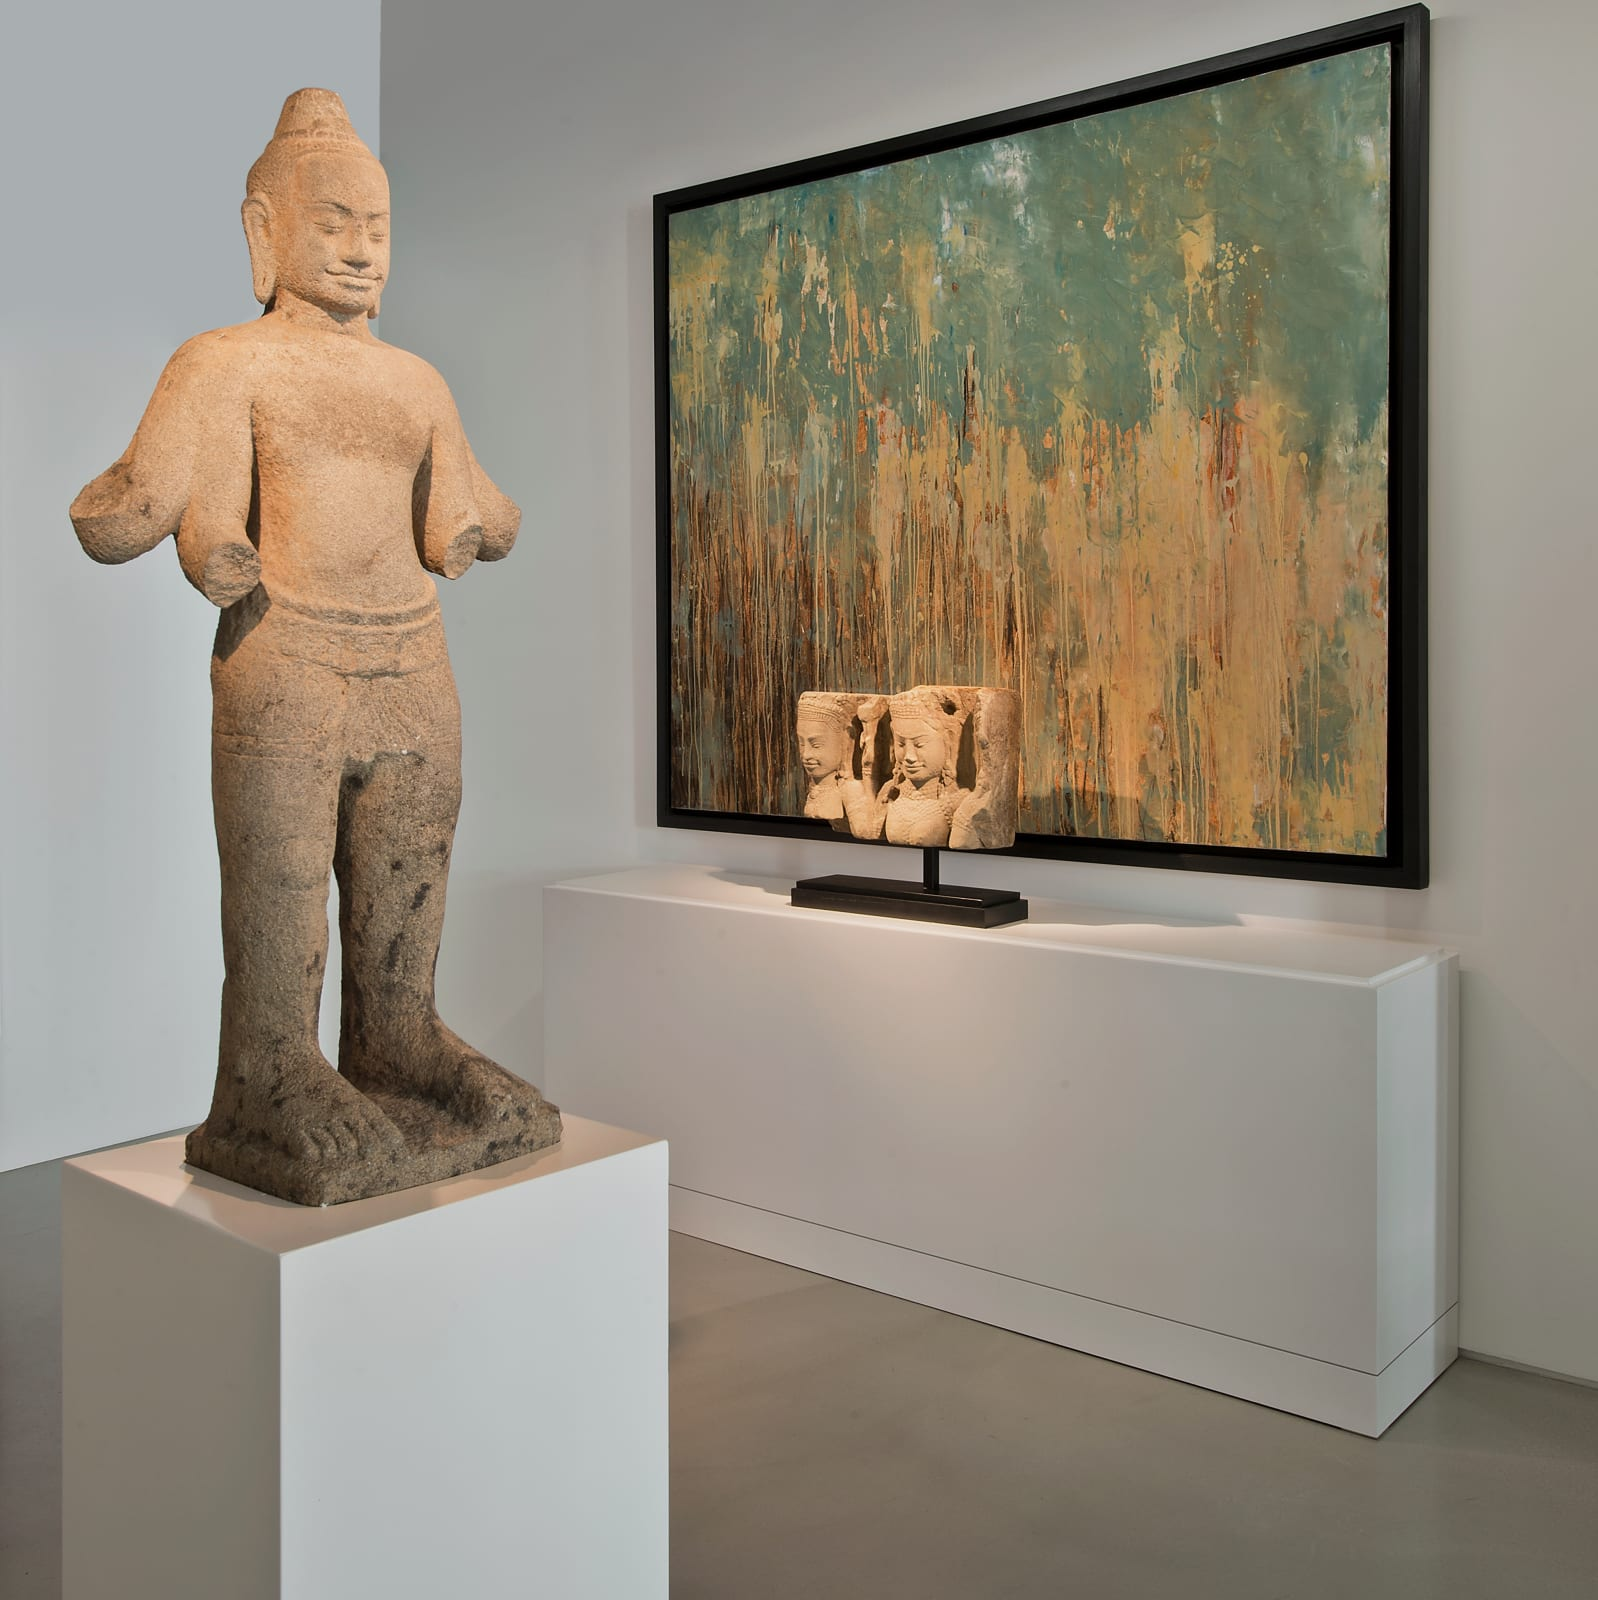 Sudaporn Teja and Khmer Sculpture